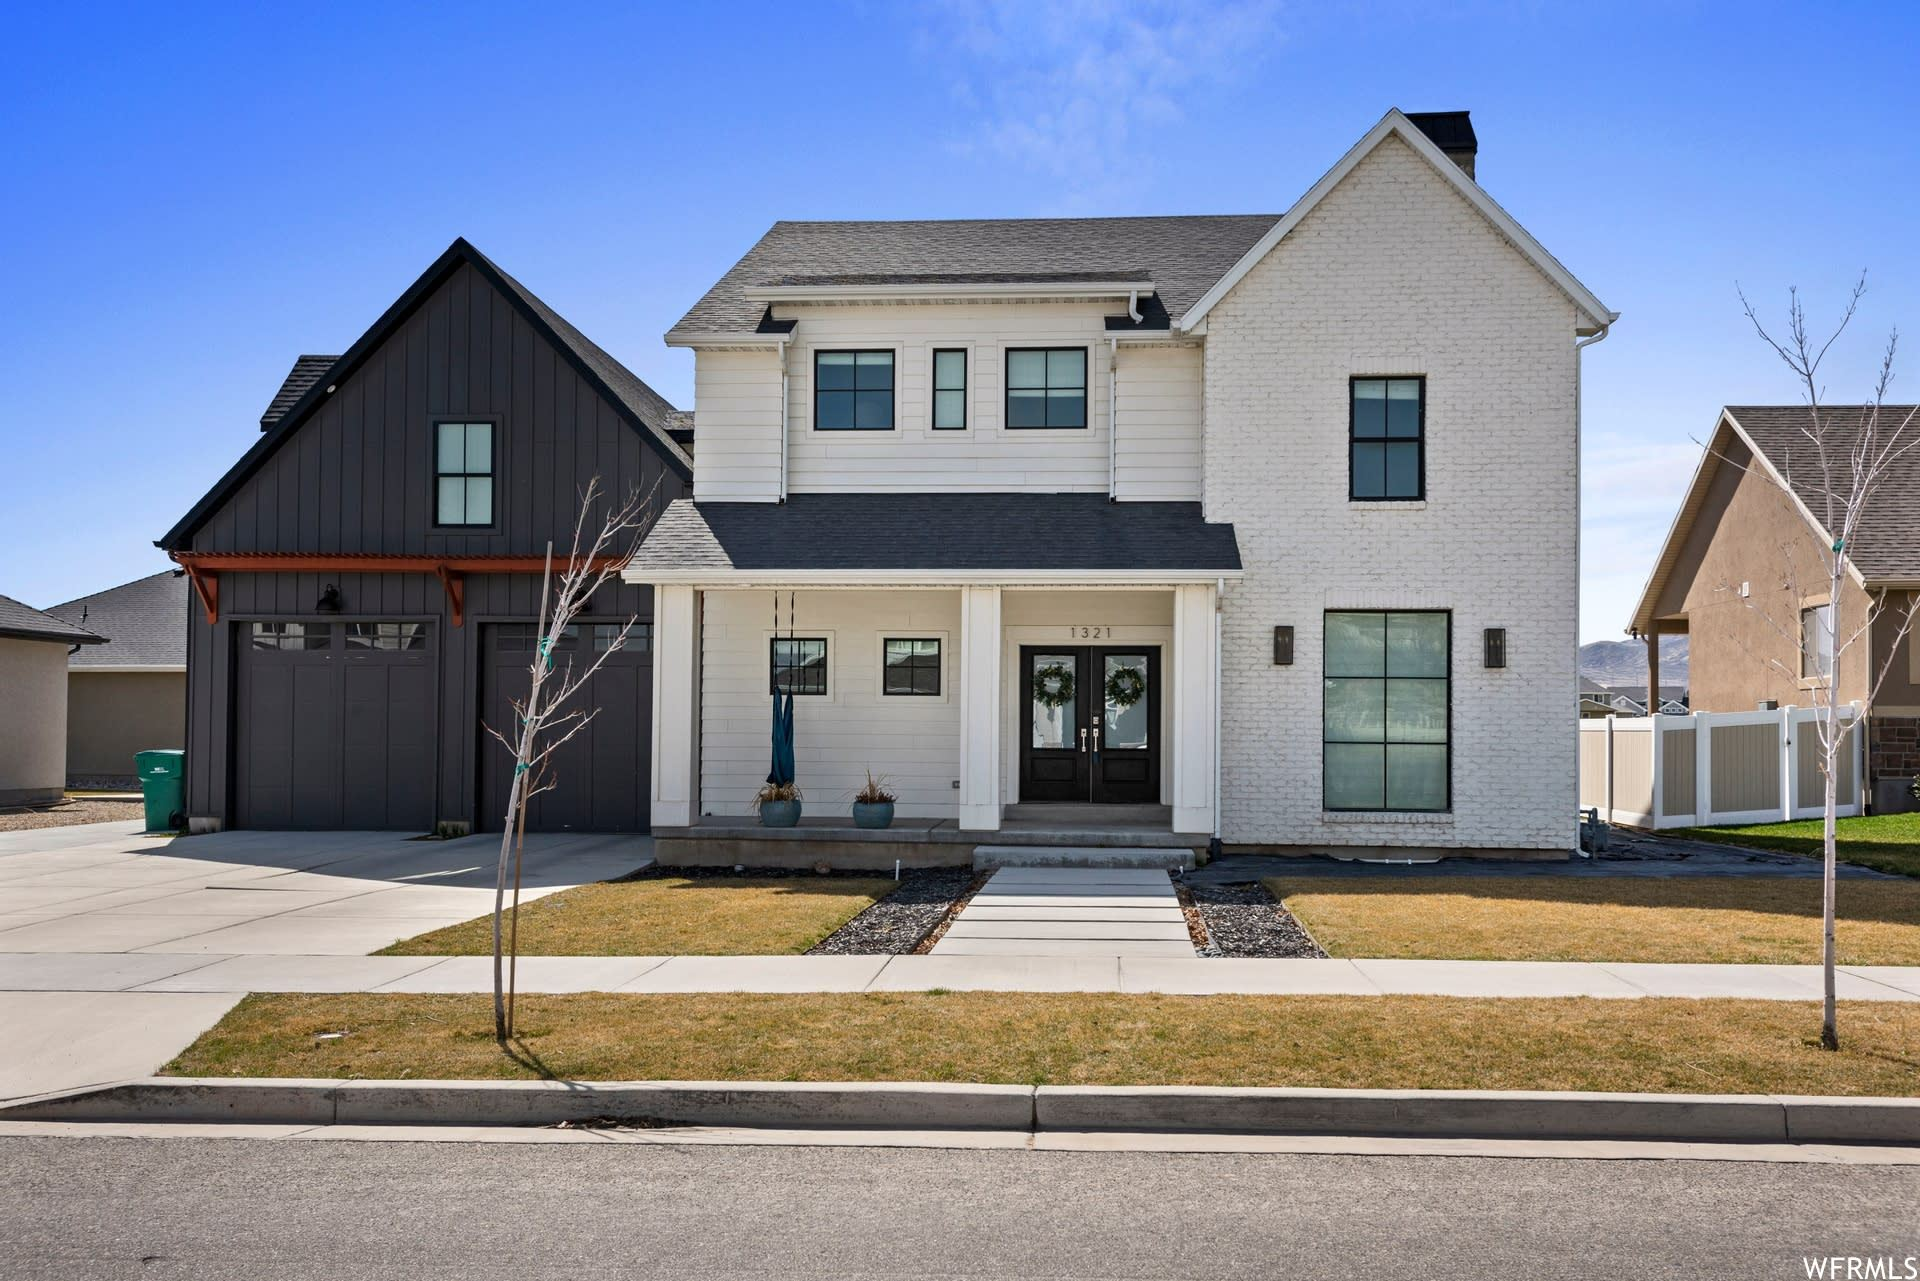 Photo of 1321 W BLUE QUILL DR, Bluffdale, UT 84065 (MLS # 1733638)